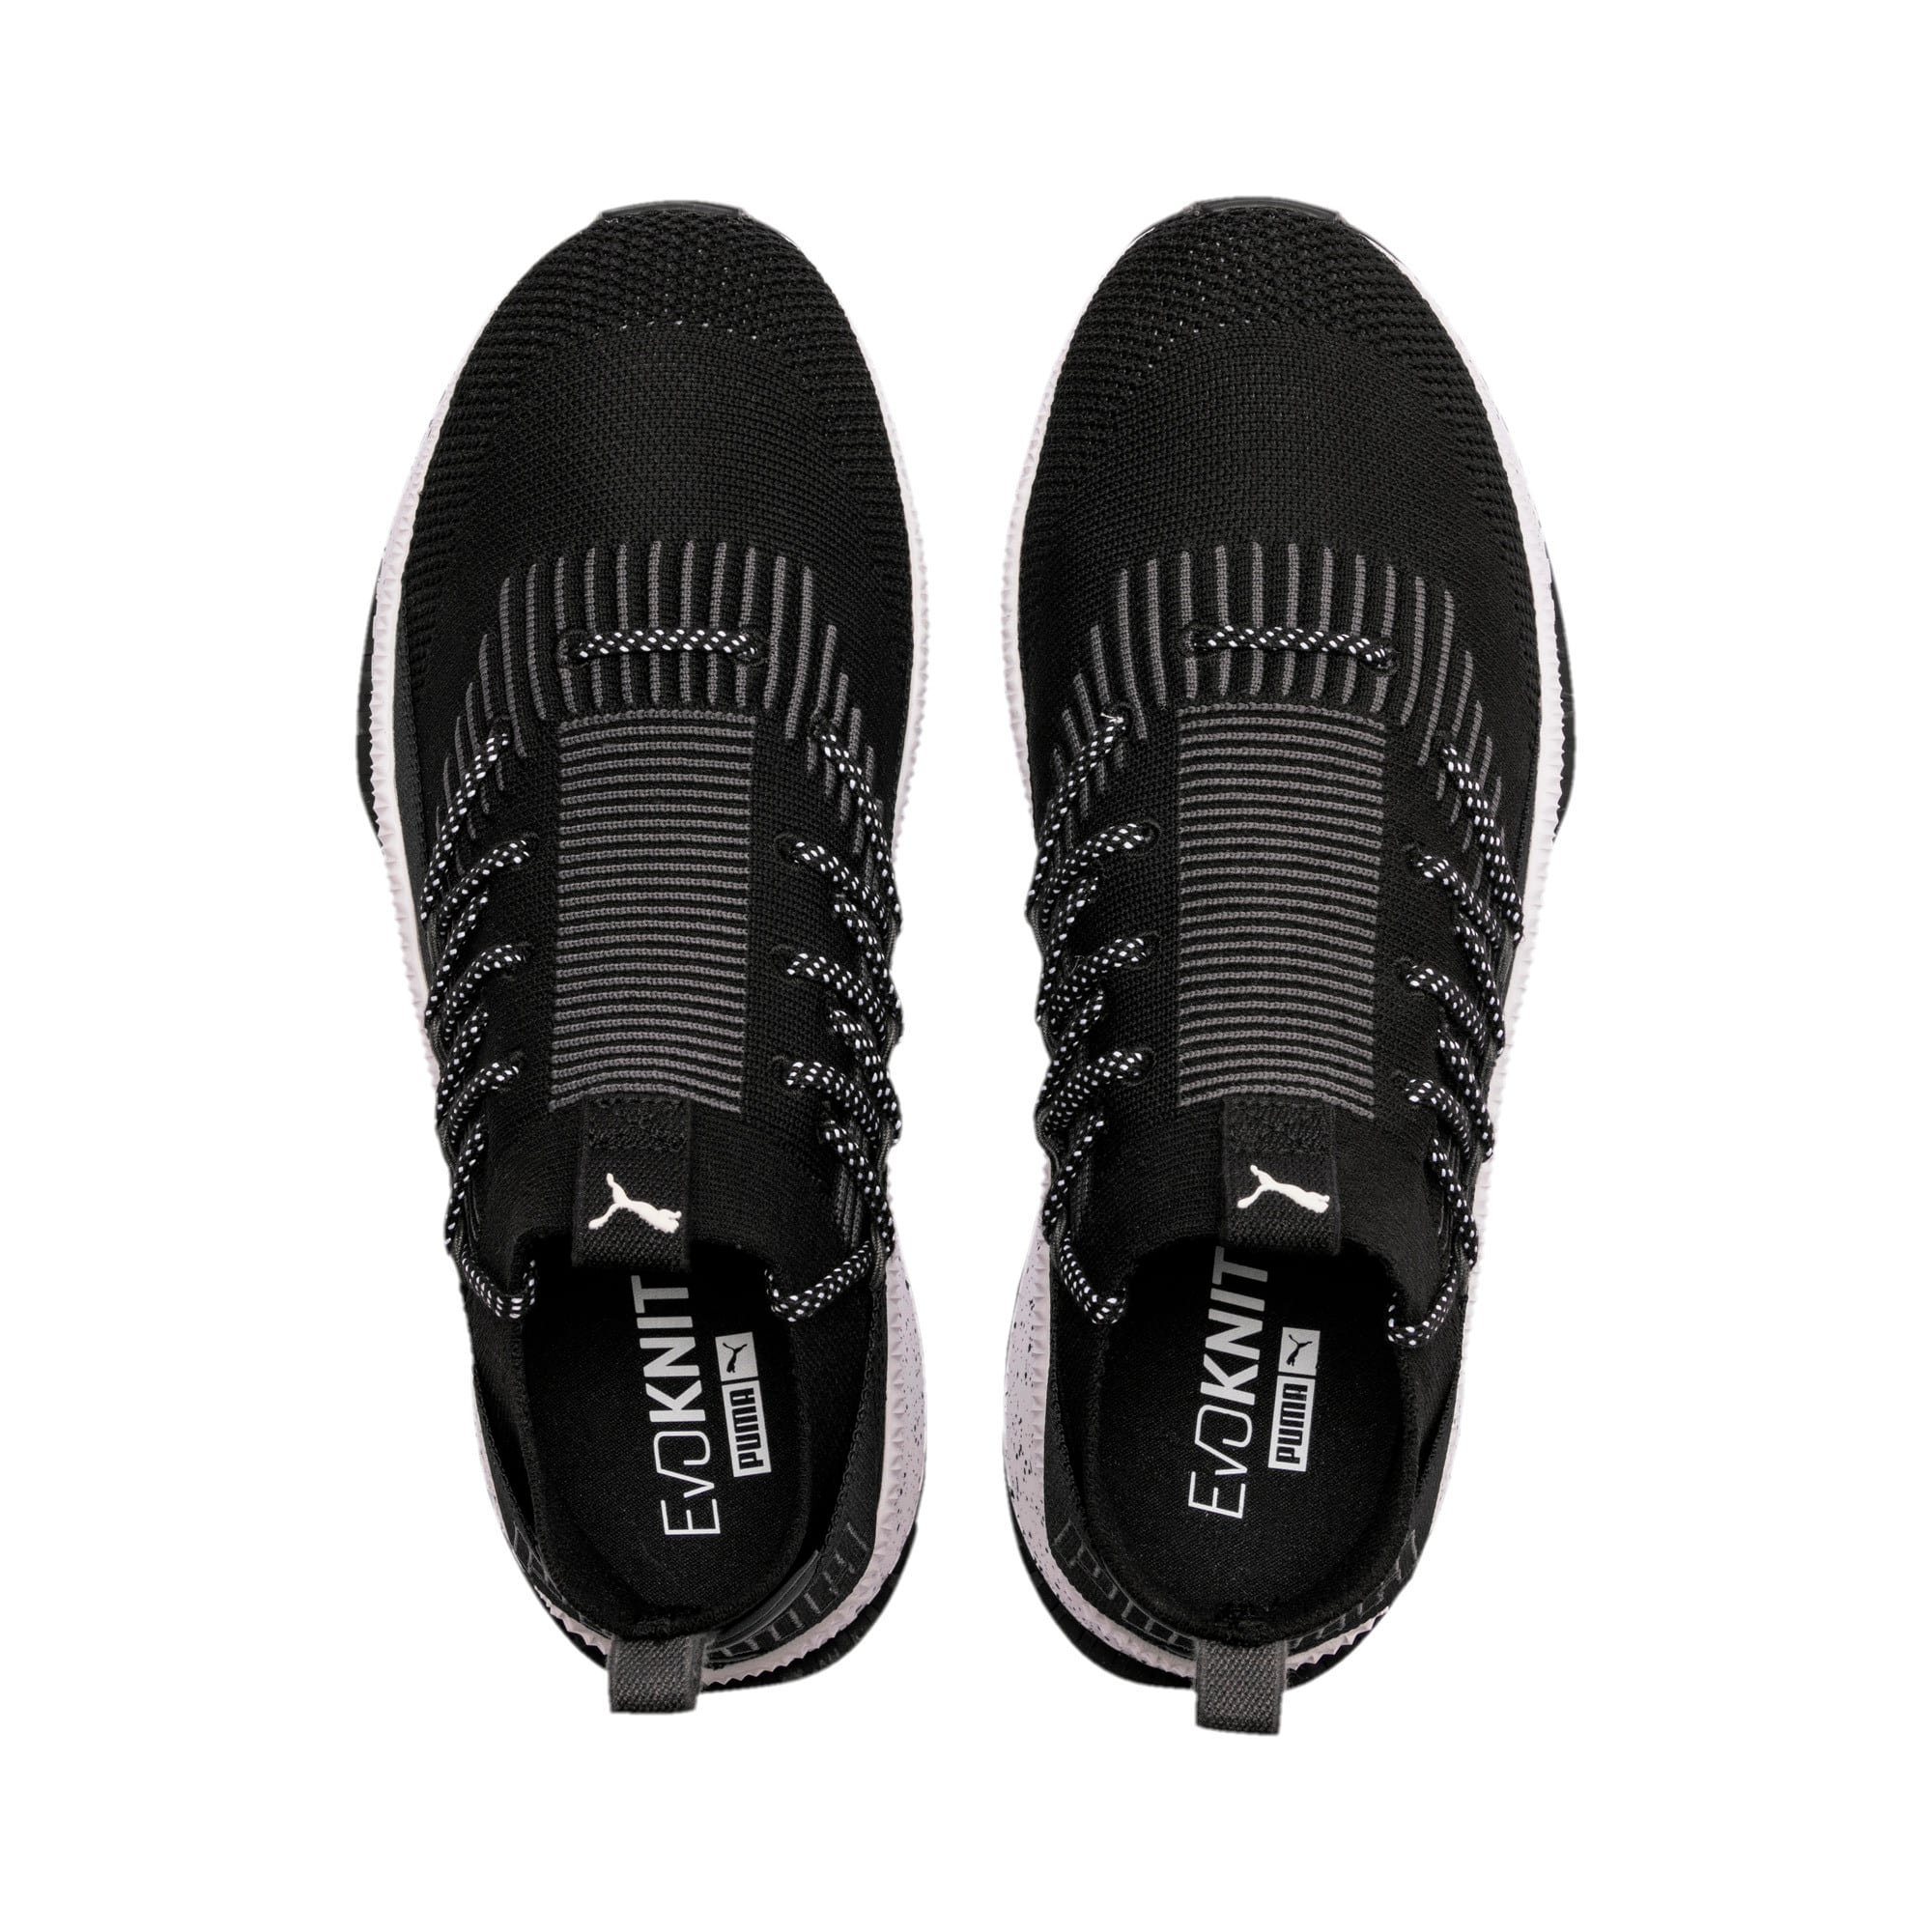 Thumbnail 6 of Tsugi Kai Jun Speckle evoKNIT Trainers, Puma Black-Asphalt, medium